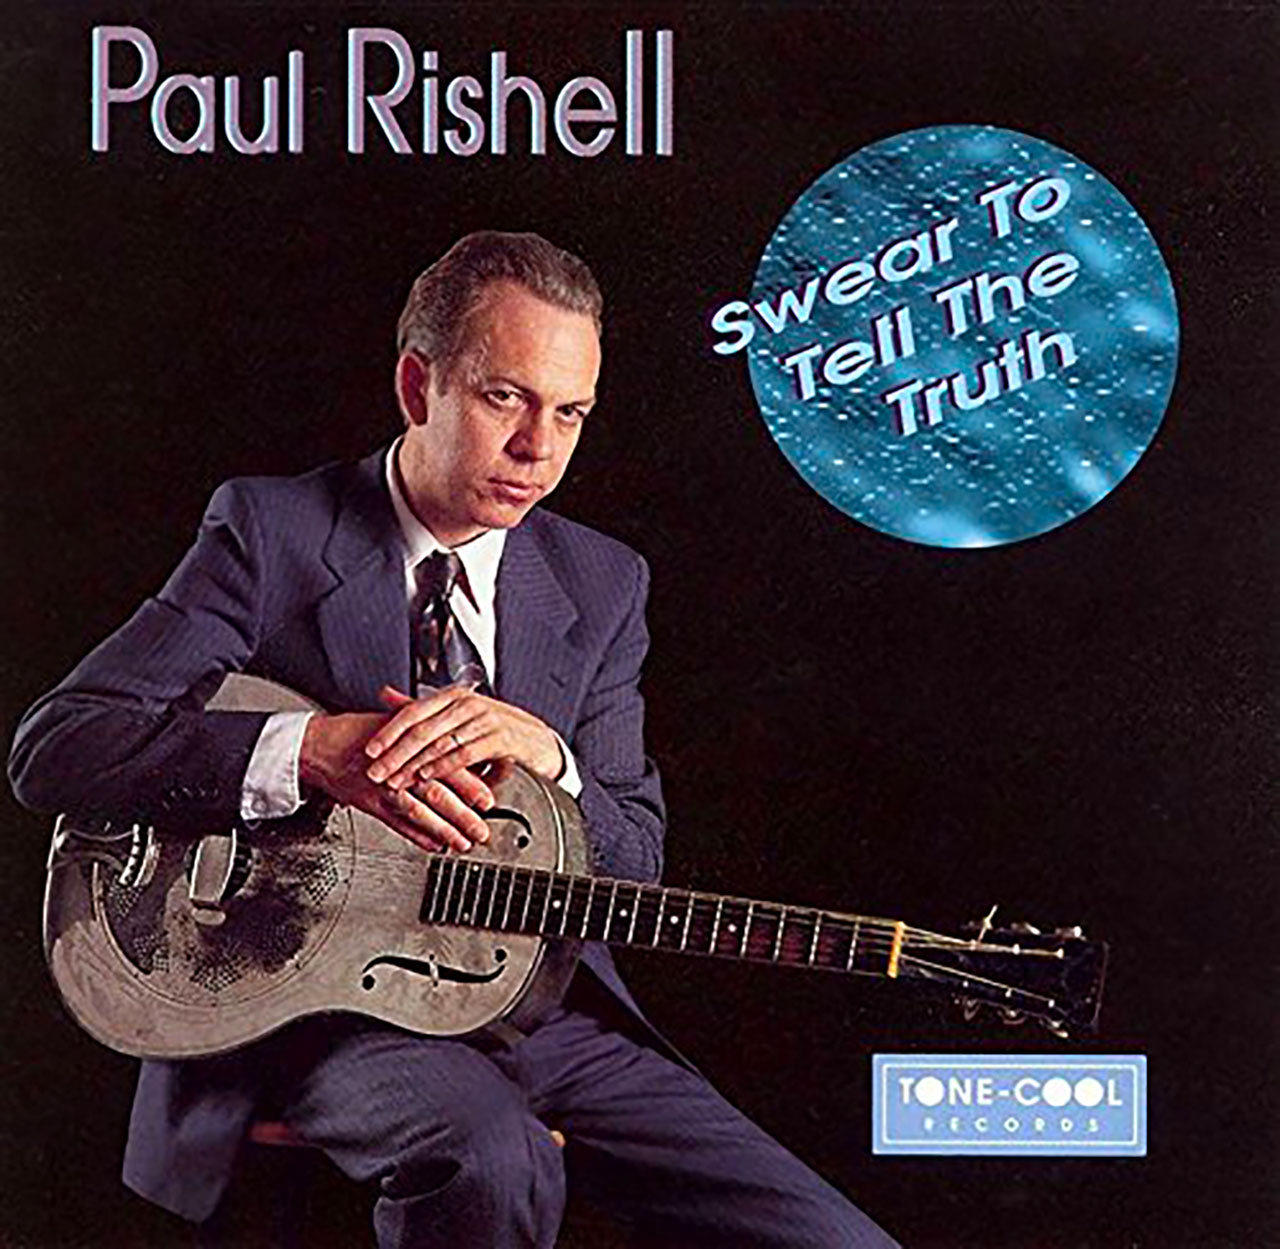 Paul Rishell – Swear To Tell The Truth cover album